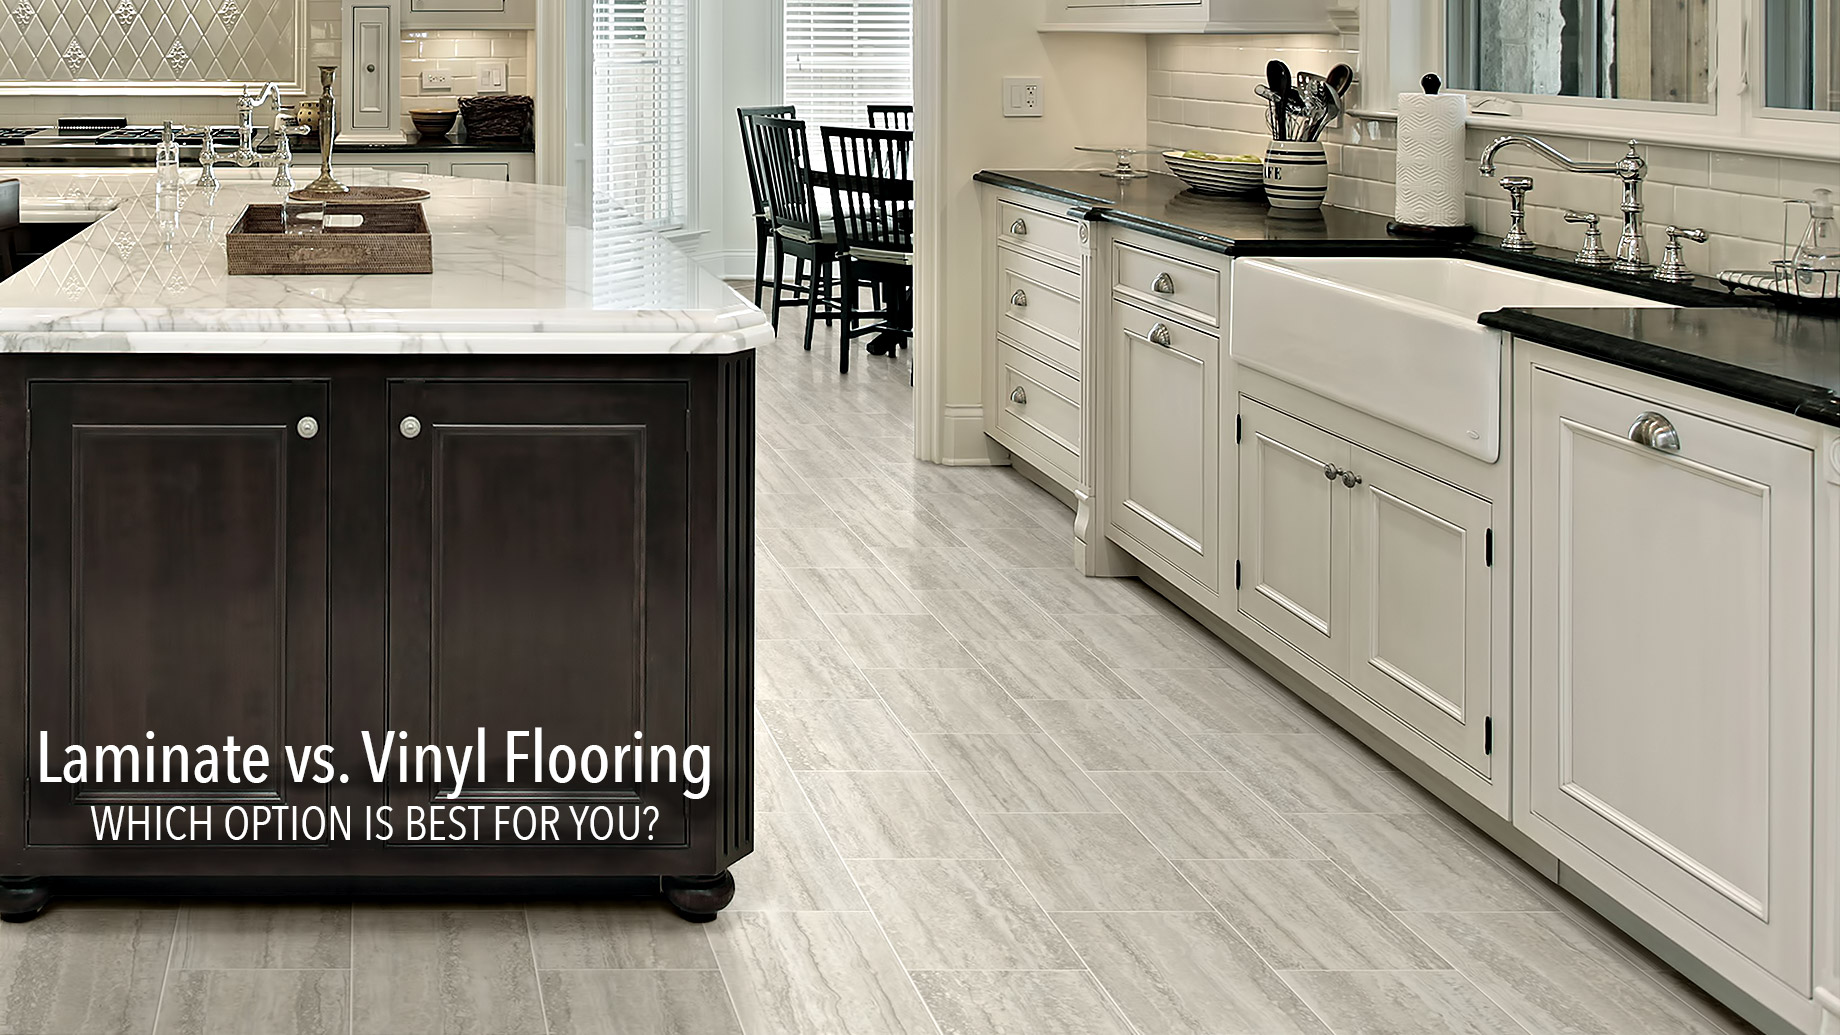 Laminate vs. Vinyl Flooring - Which Option is Best for You?